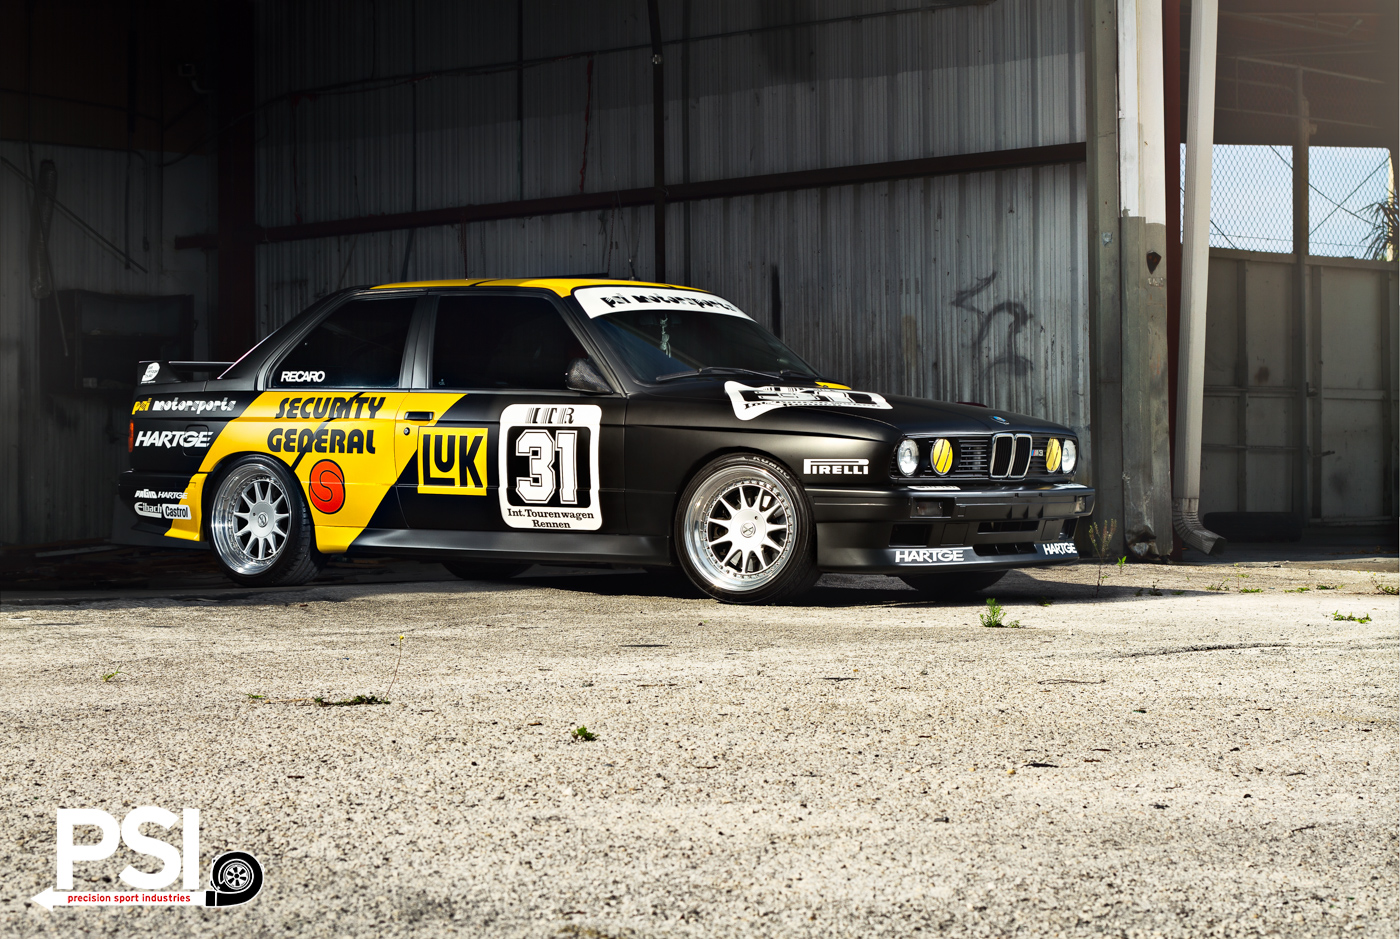 1988 E30 BMW M3 DTM Replica by PSI